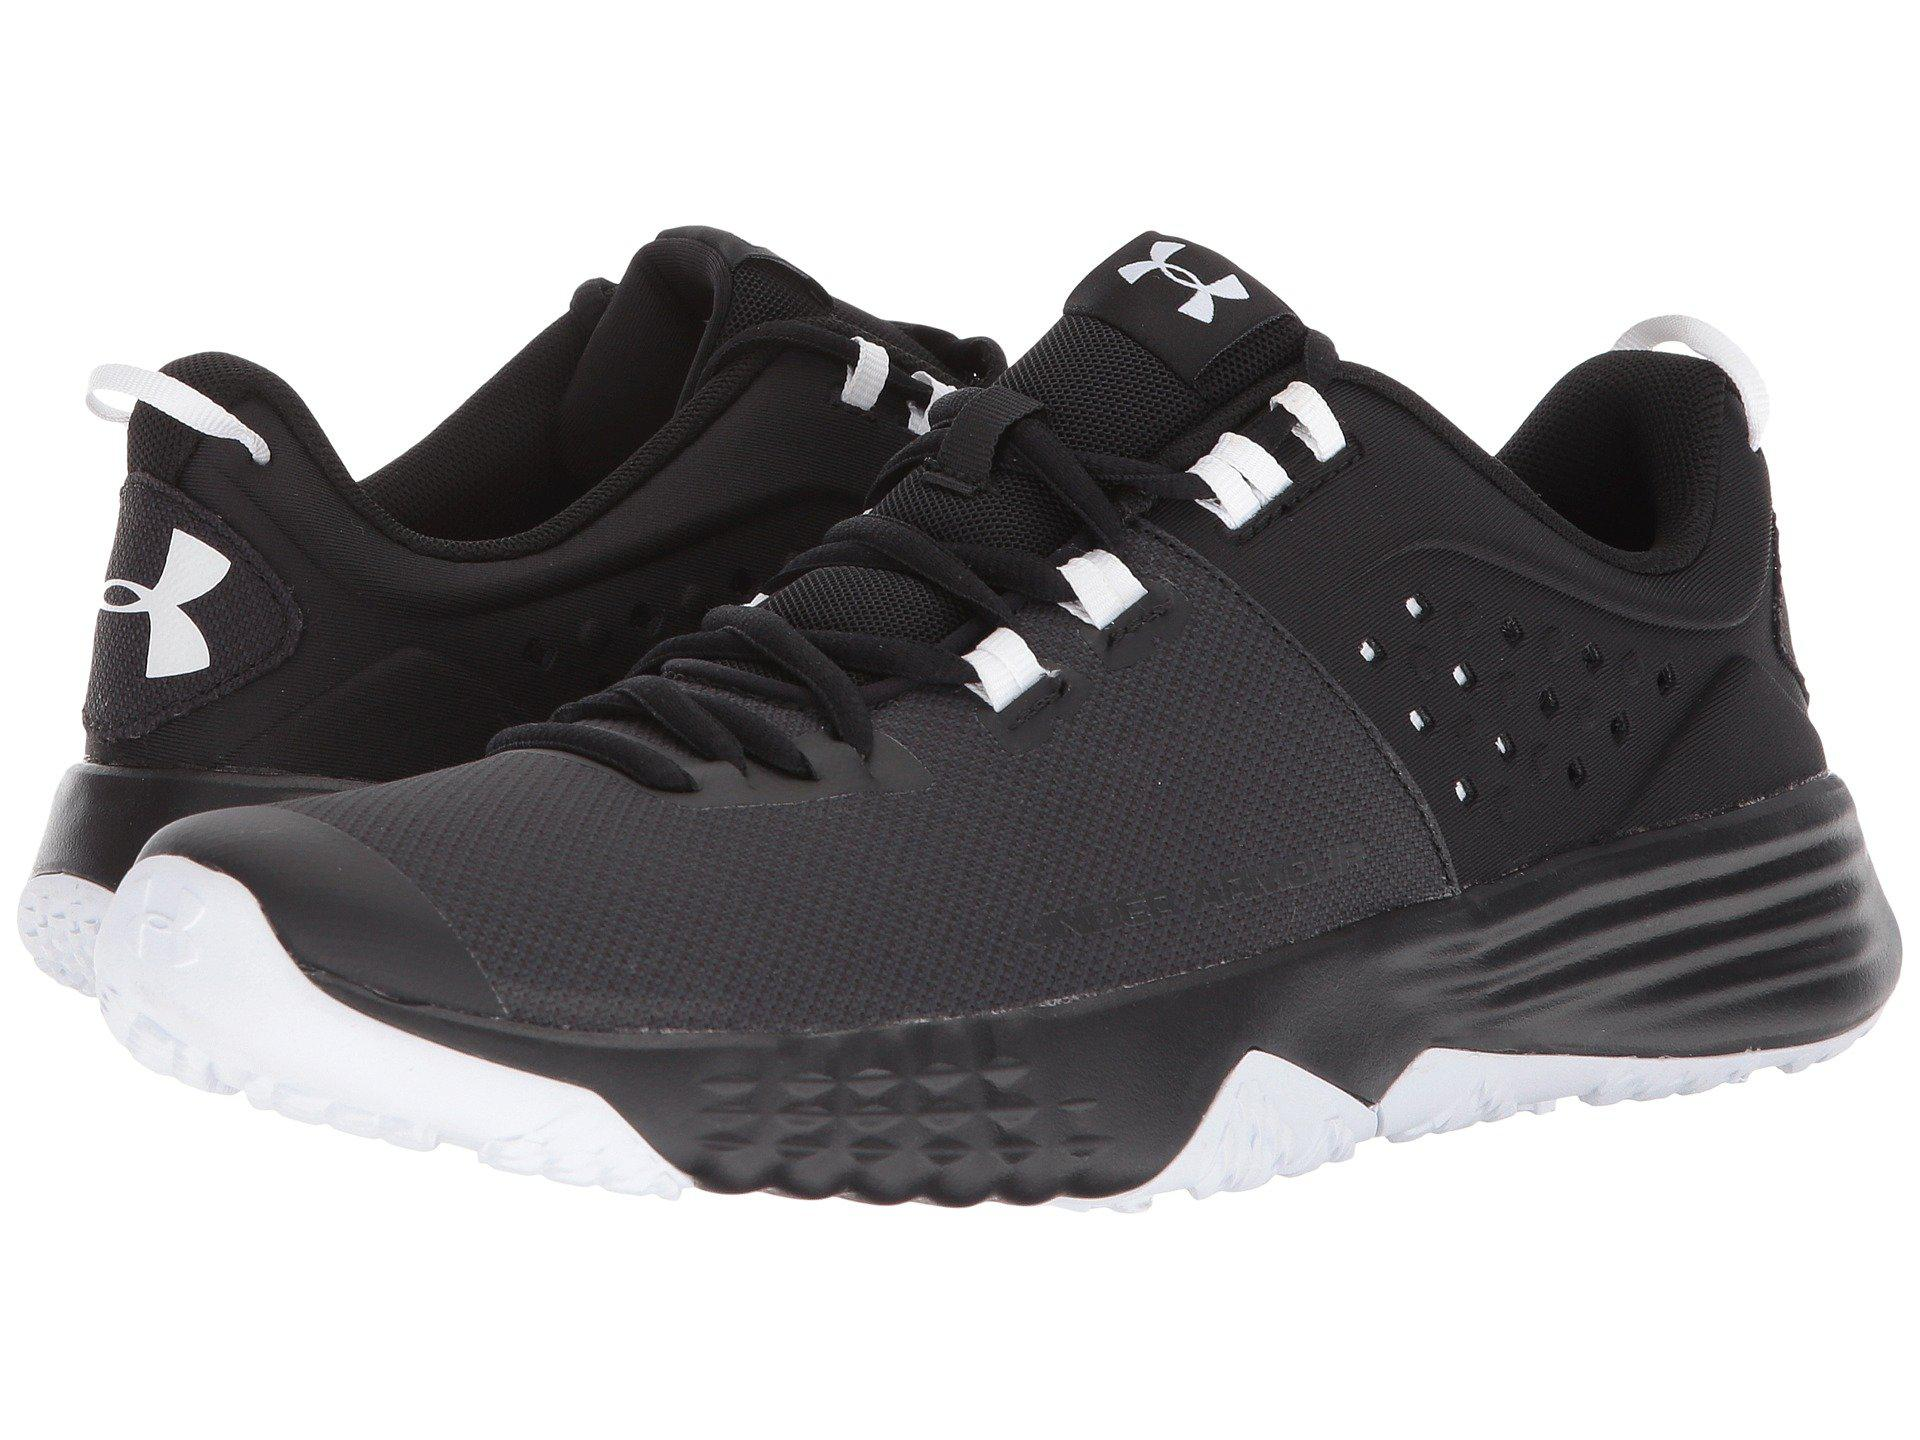 UNDER ARMOUR Men's UA BAM Trainer Cross-Training Shoes fast delivery cheap online NUd2mR